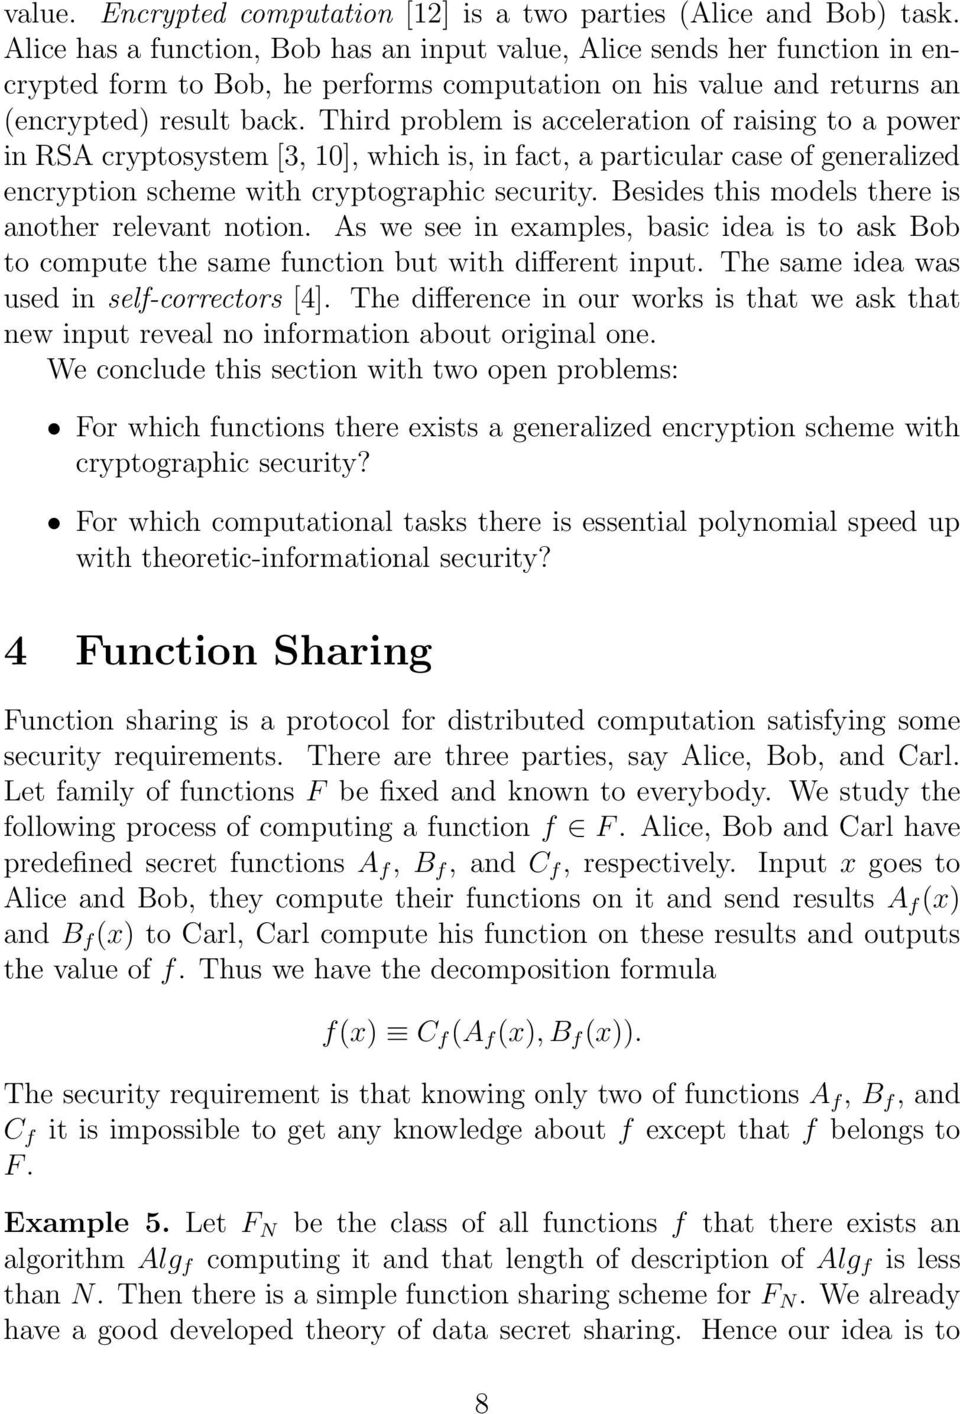 Third problem is acceleration of raising to a power in RSA cryptosystem [3, 10], which is, in fact, a particular case of generalized encryption scheme with cryptographic security.